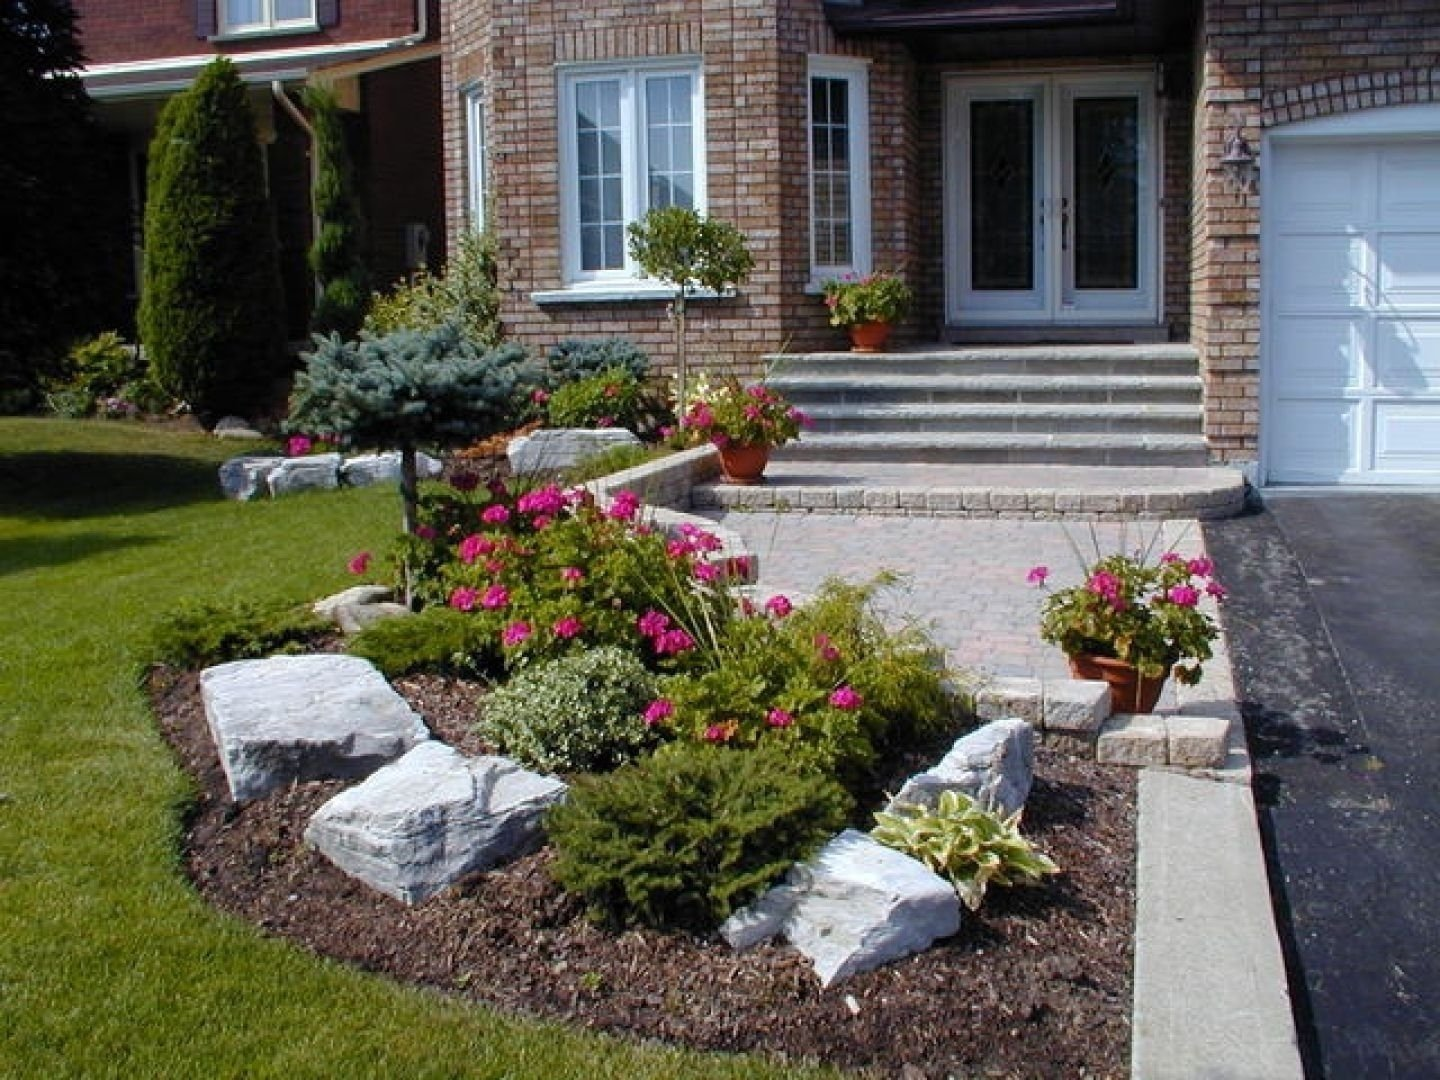 10 Attractive Landscaping Ideas For Small Areas front yard landscaping ideas small area 2021